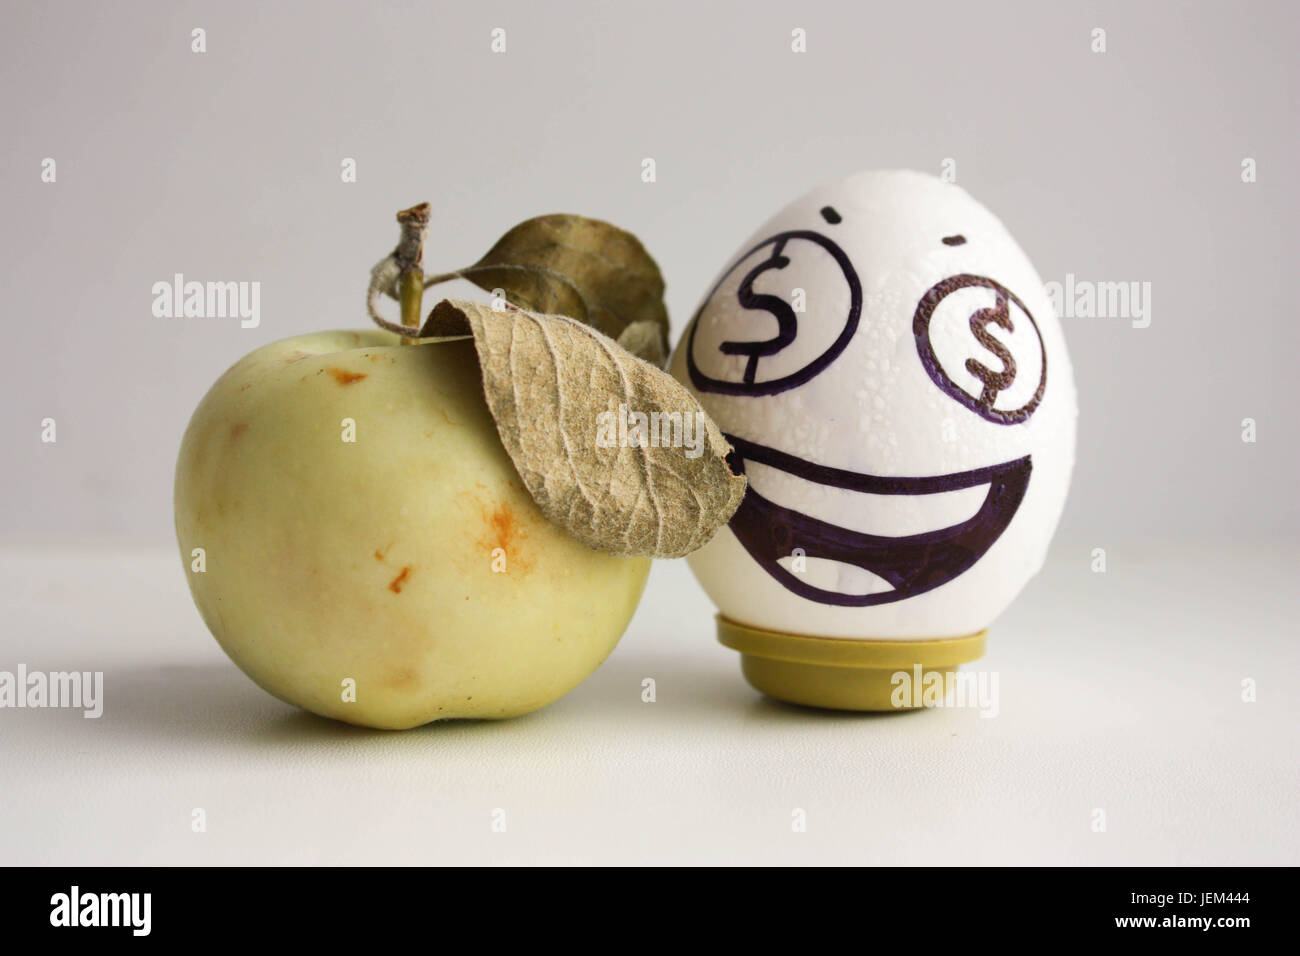 Business Concept An Egg With Eyes Dollars And An Apple A Good Business Idea Money Apple Photo For Your Design